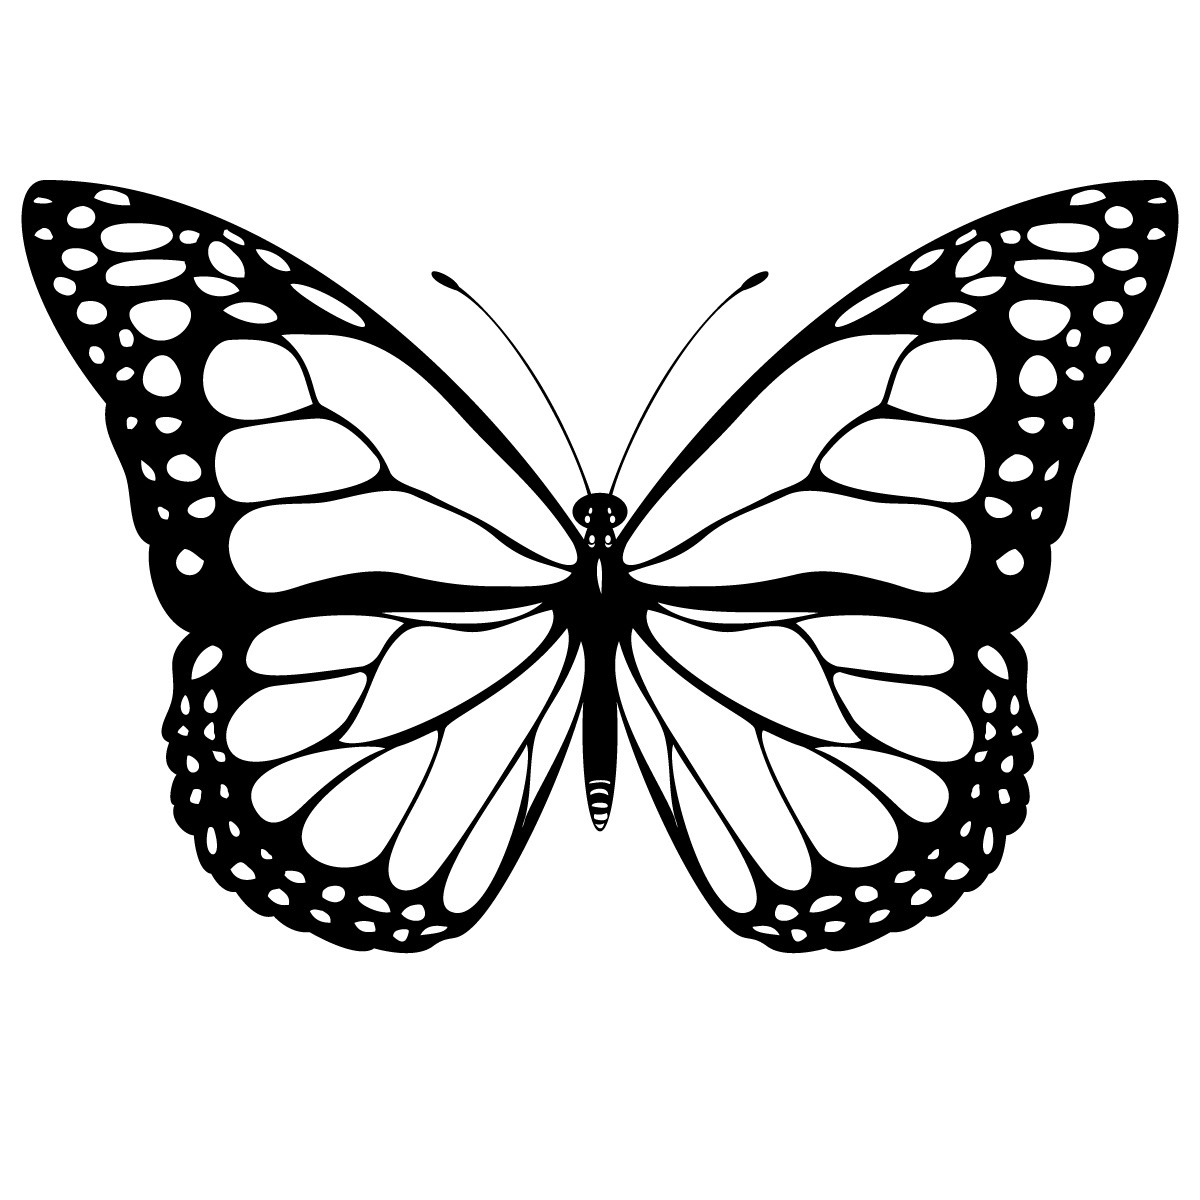 butterfly coloring pages free printable butterfly coloring pages download and print butterfly printable free coloring butterfly pages